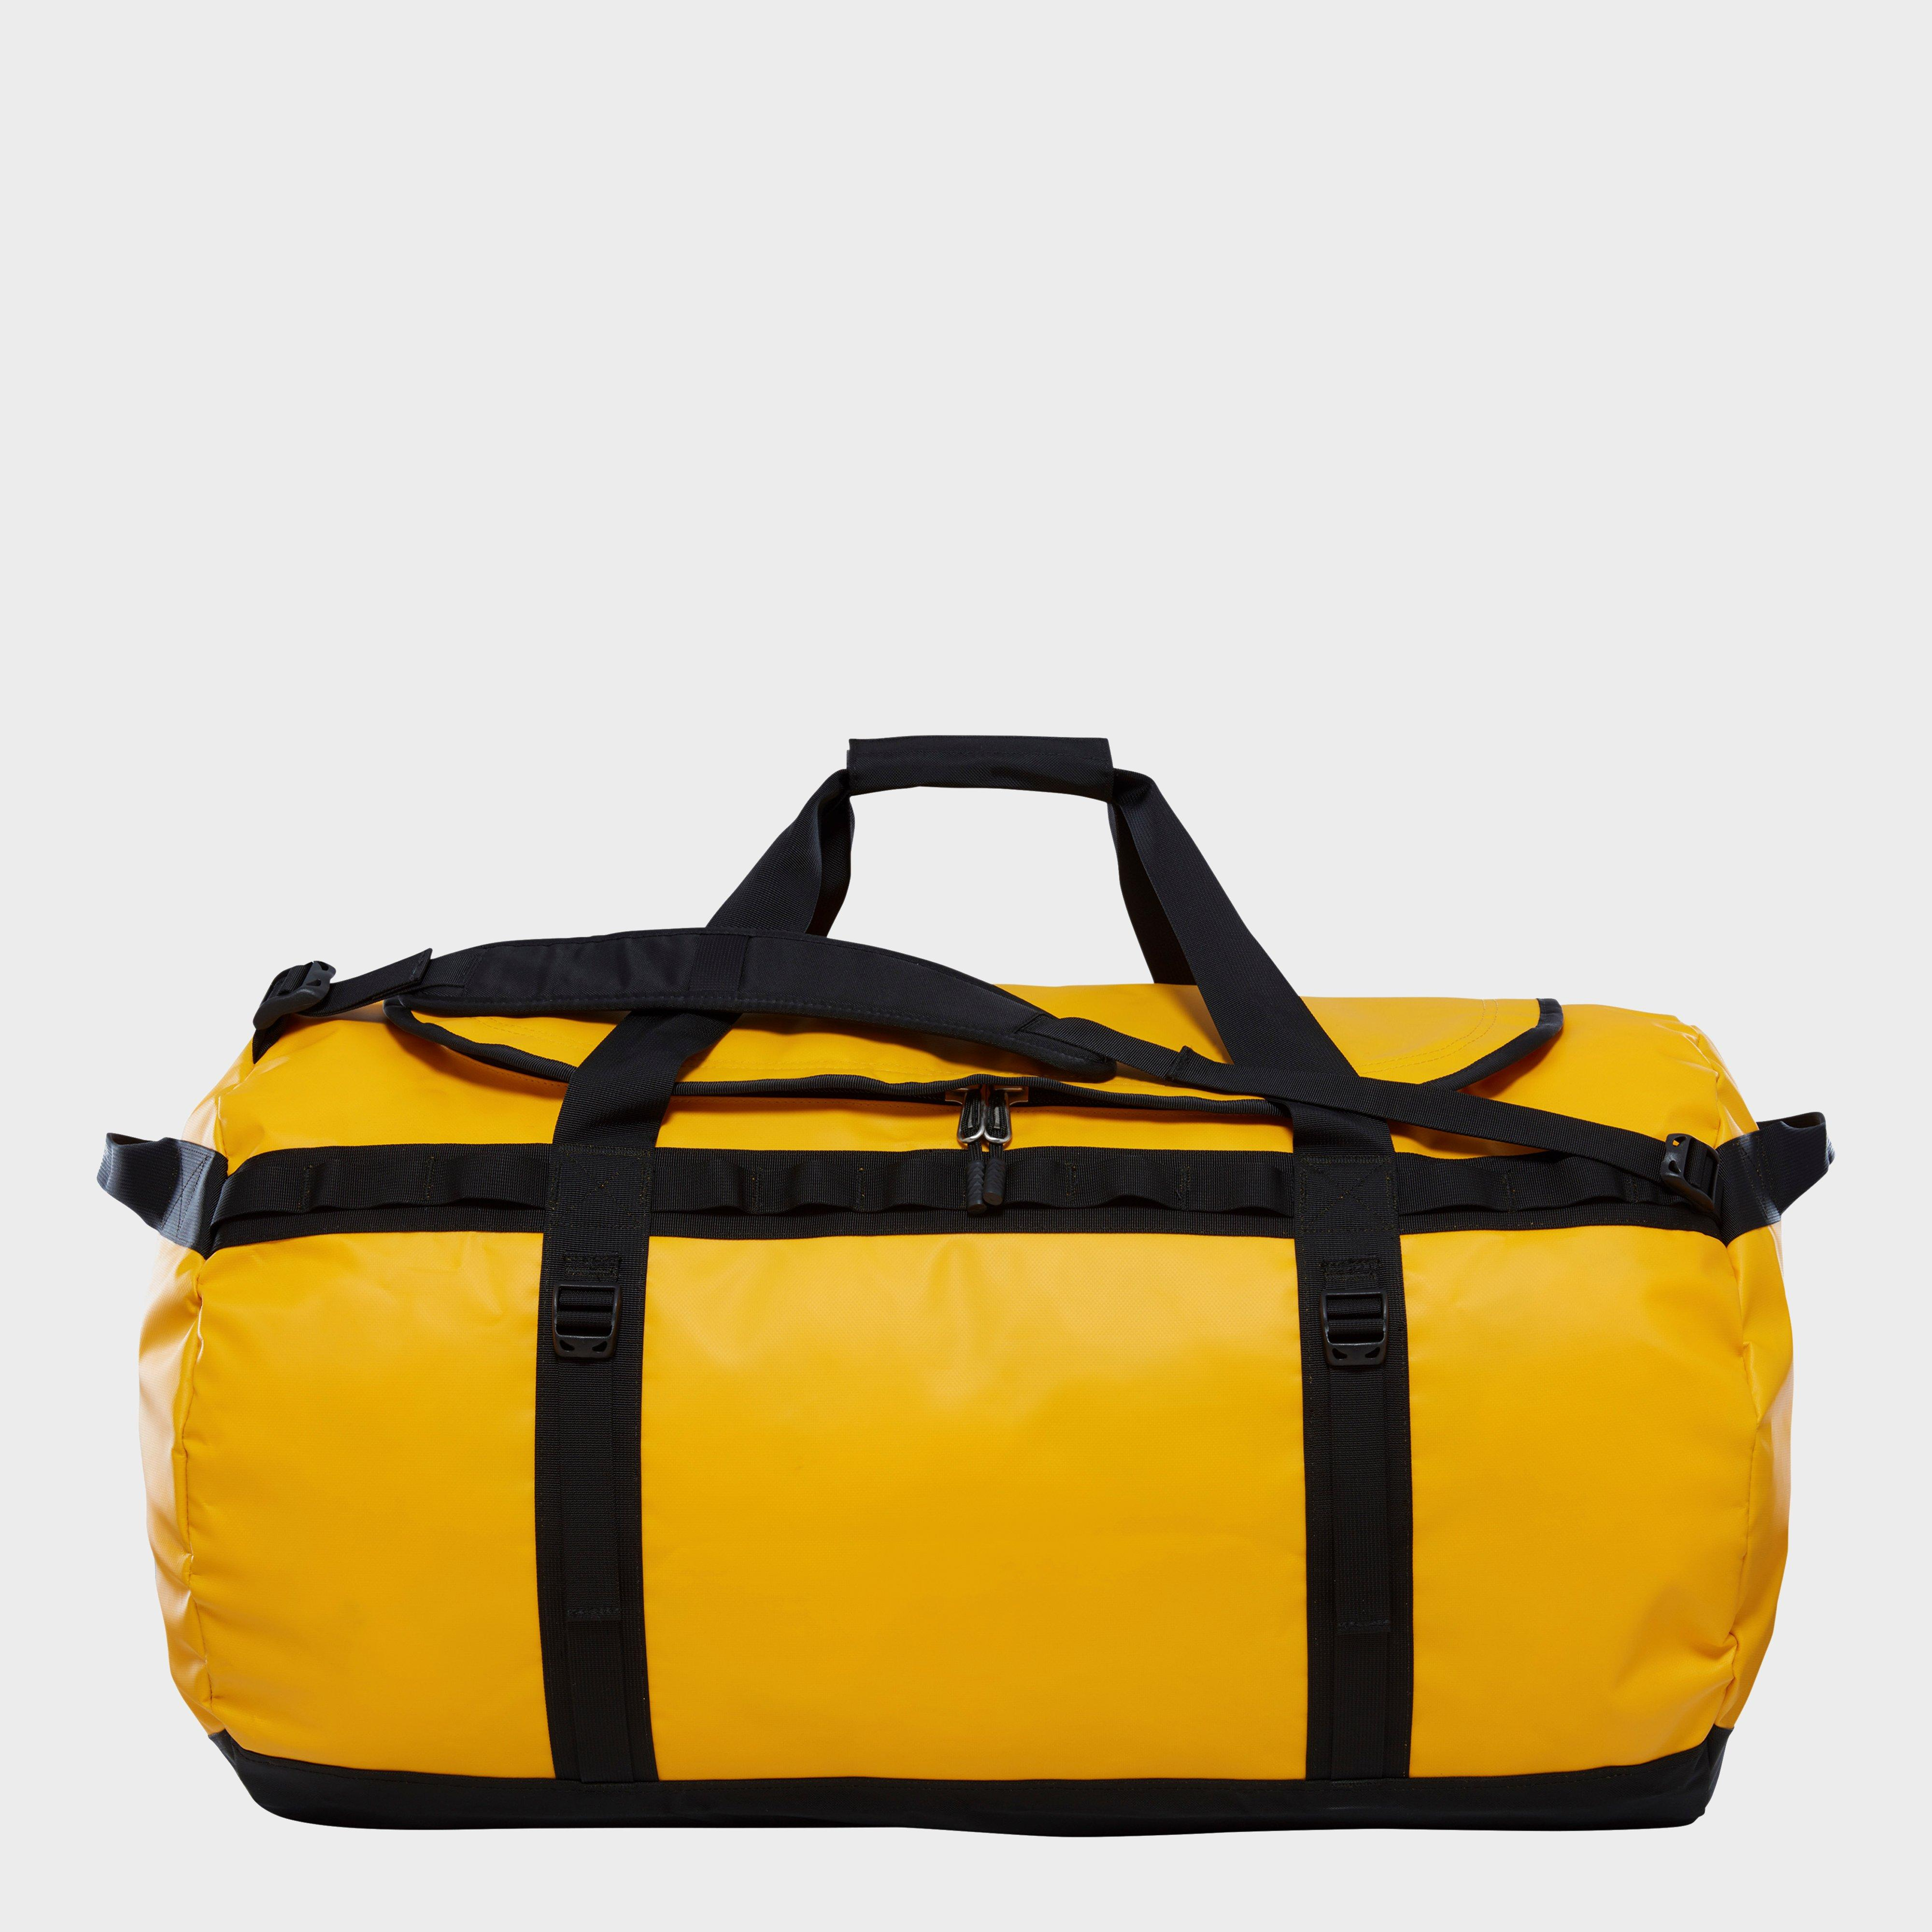 The North Face Base Camp Duffel Bag (Extra Large), Gold